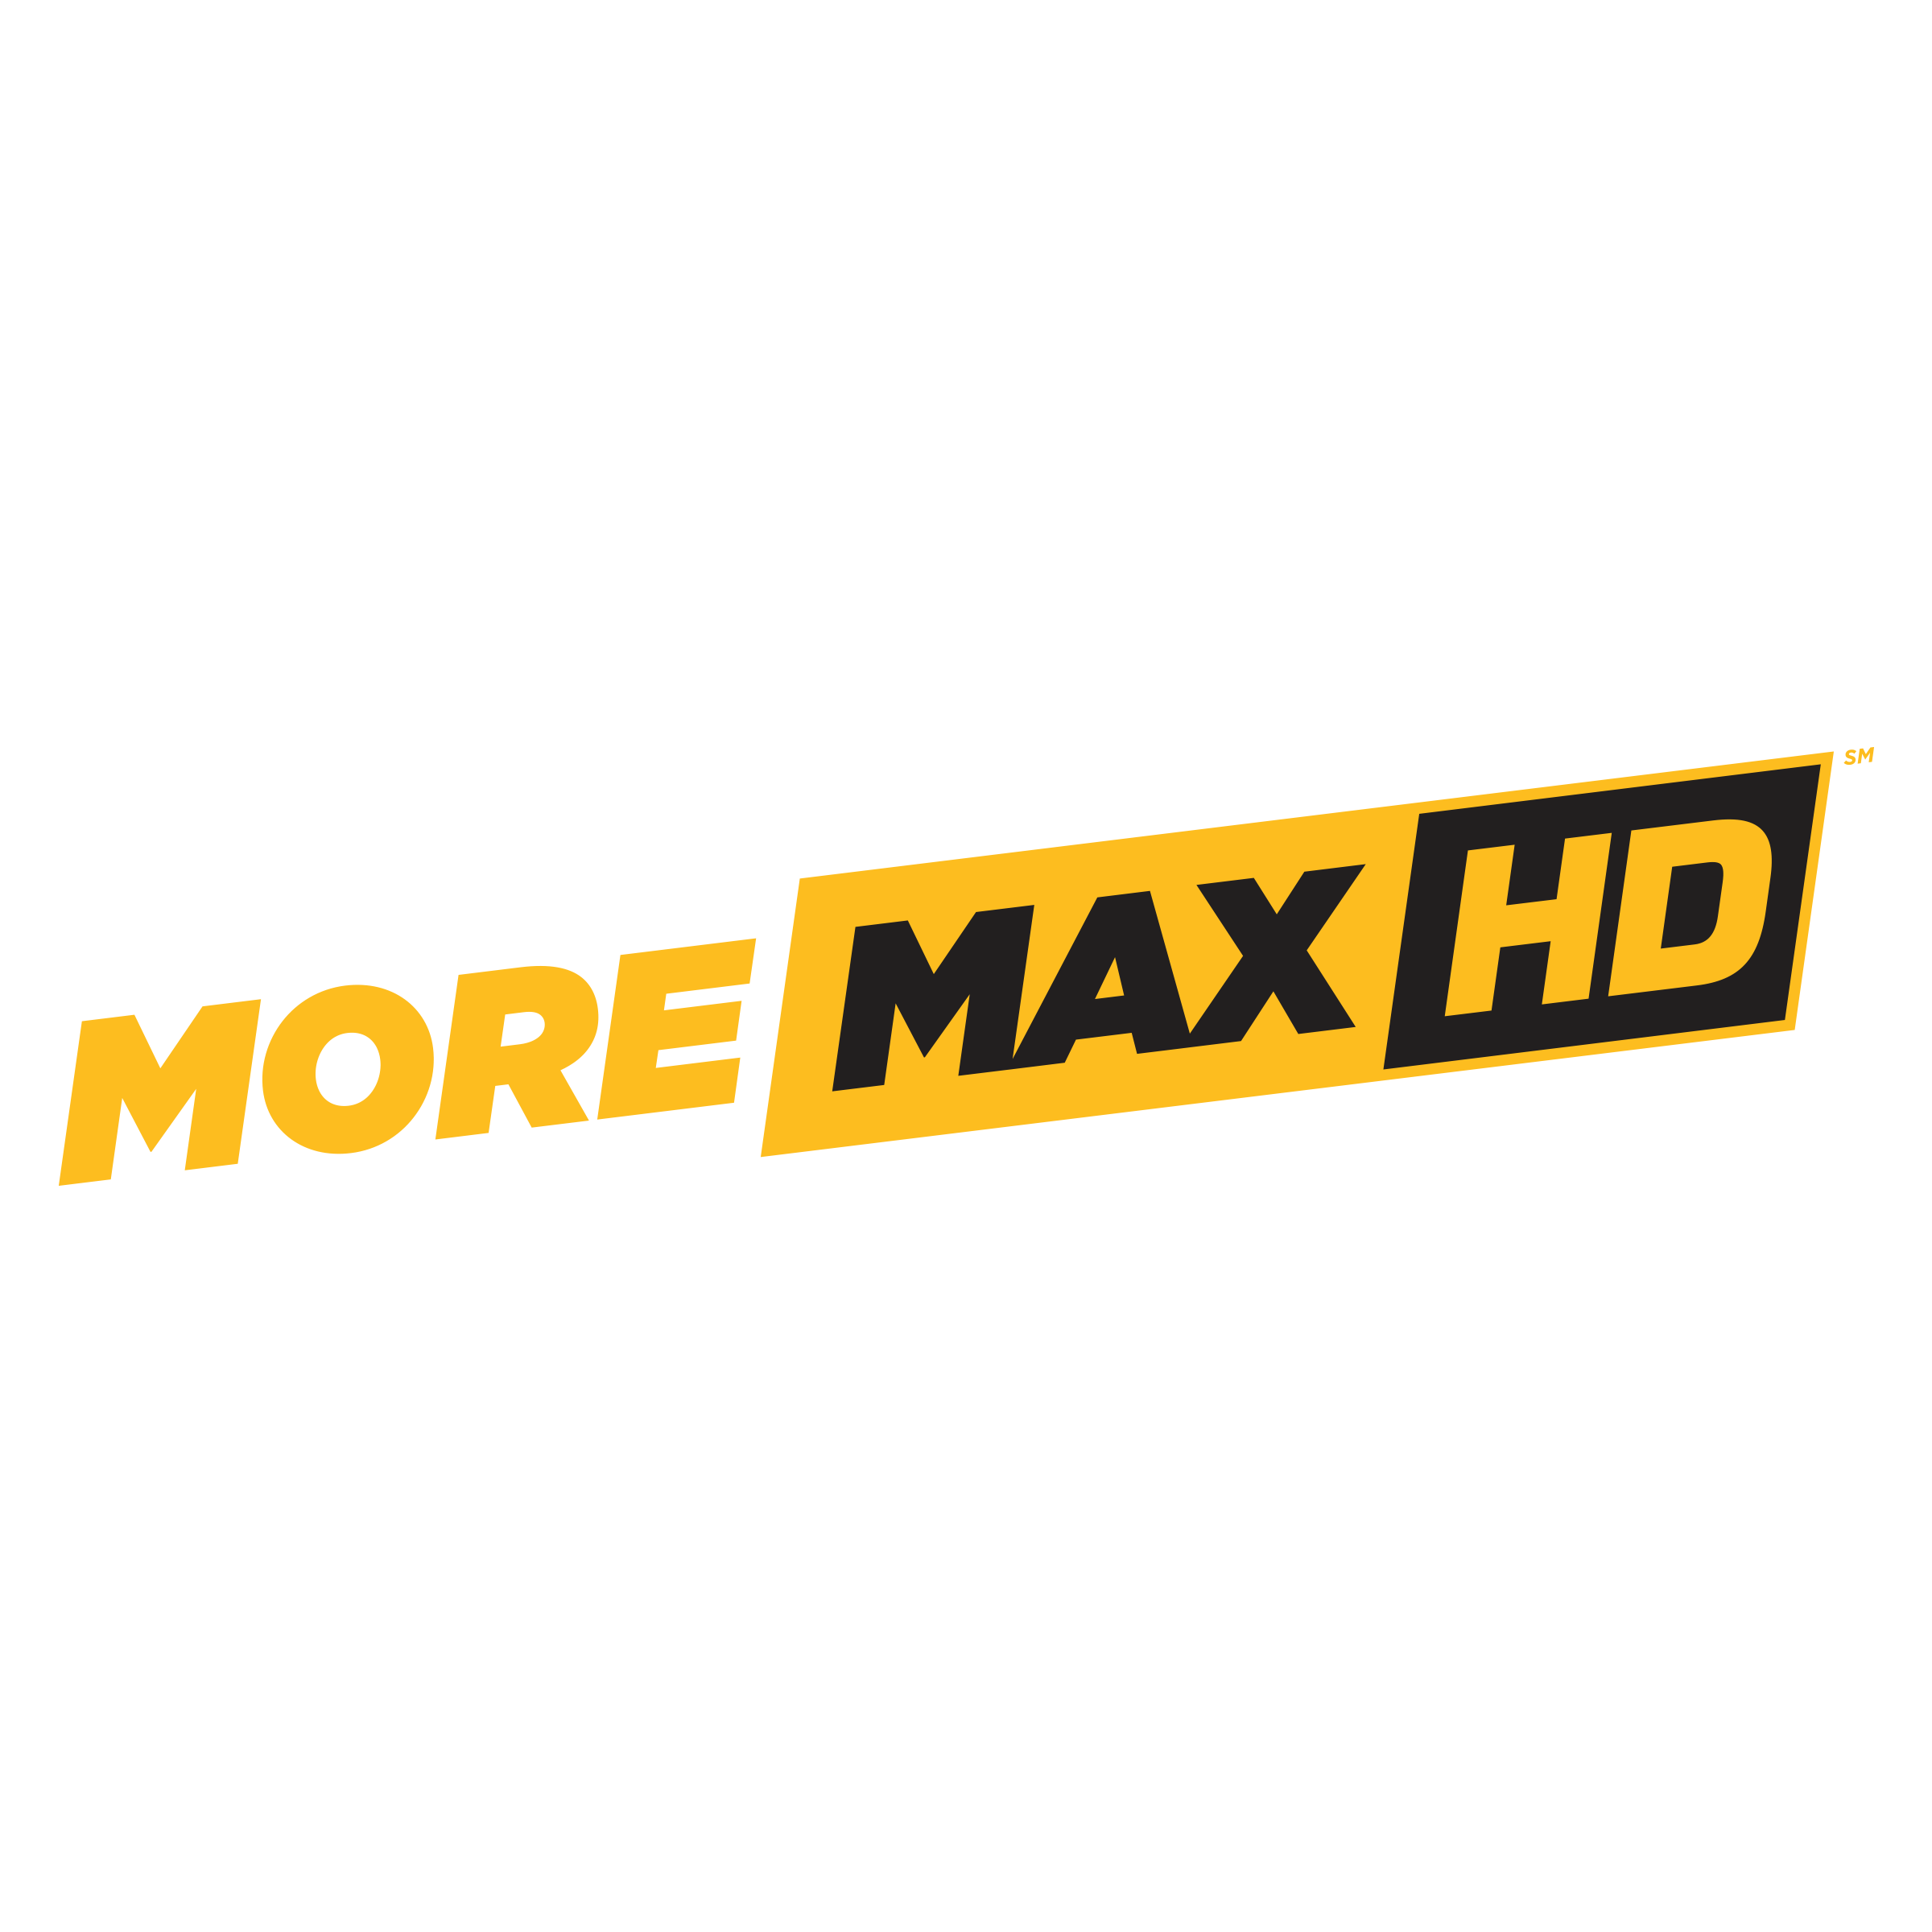 more max hdtv (west) - tv listings guide